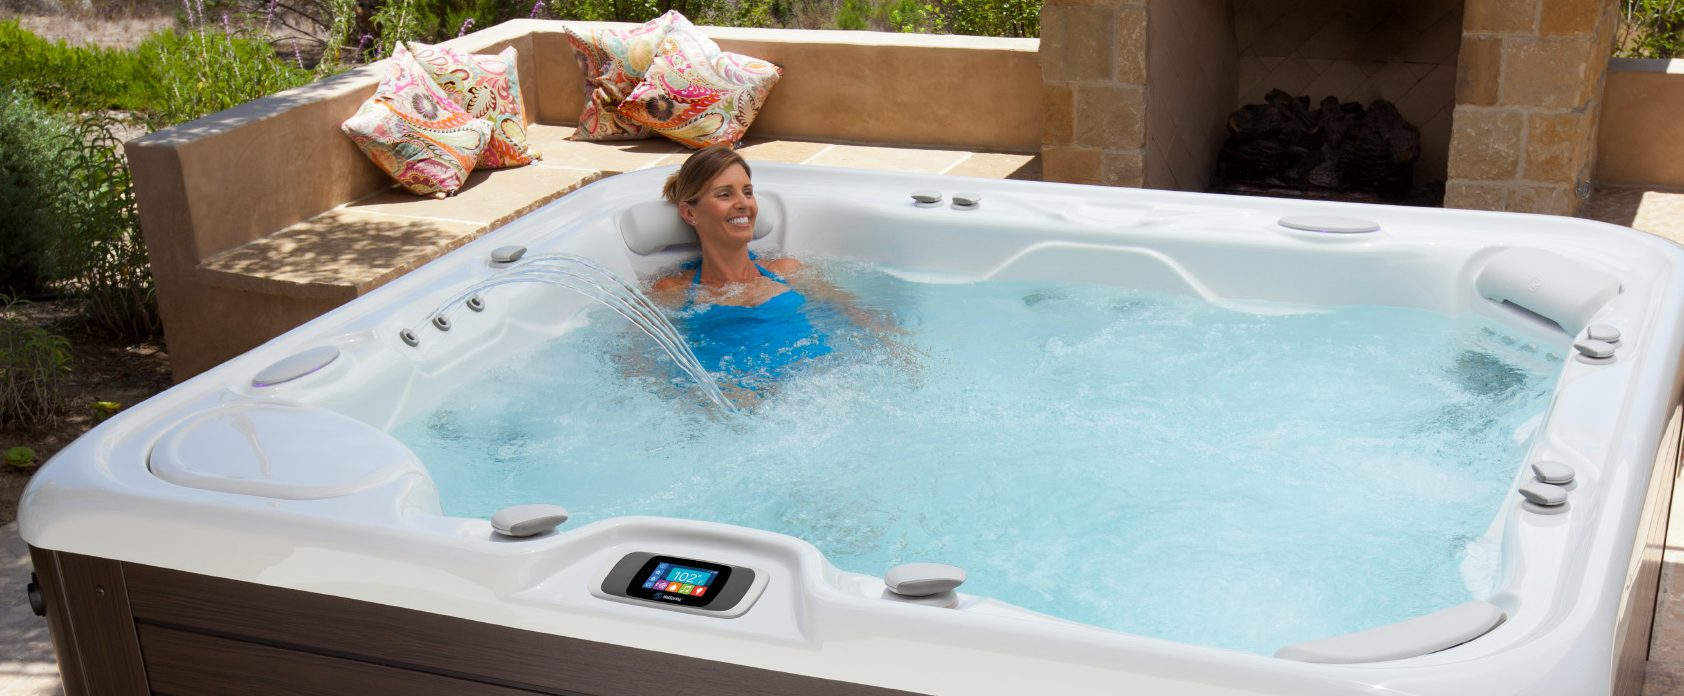 The 4 Best Arguments for Getting That Hot Tub